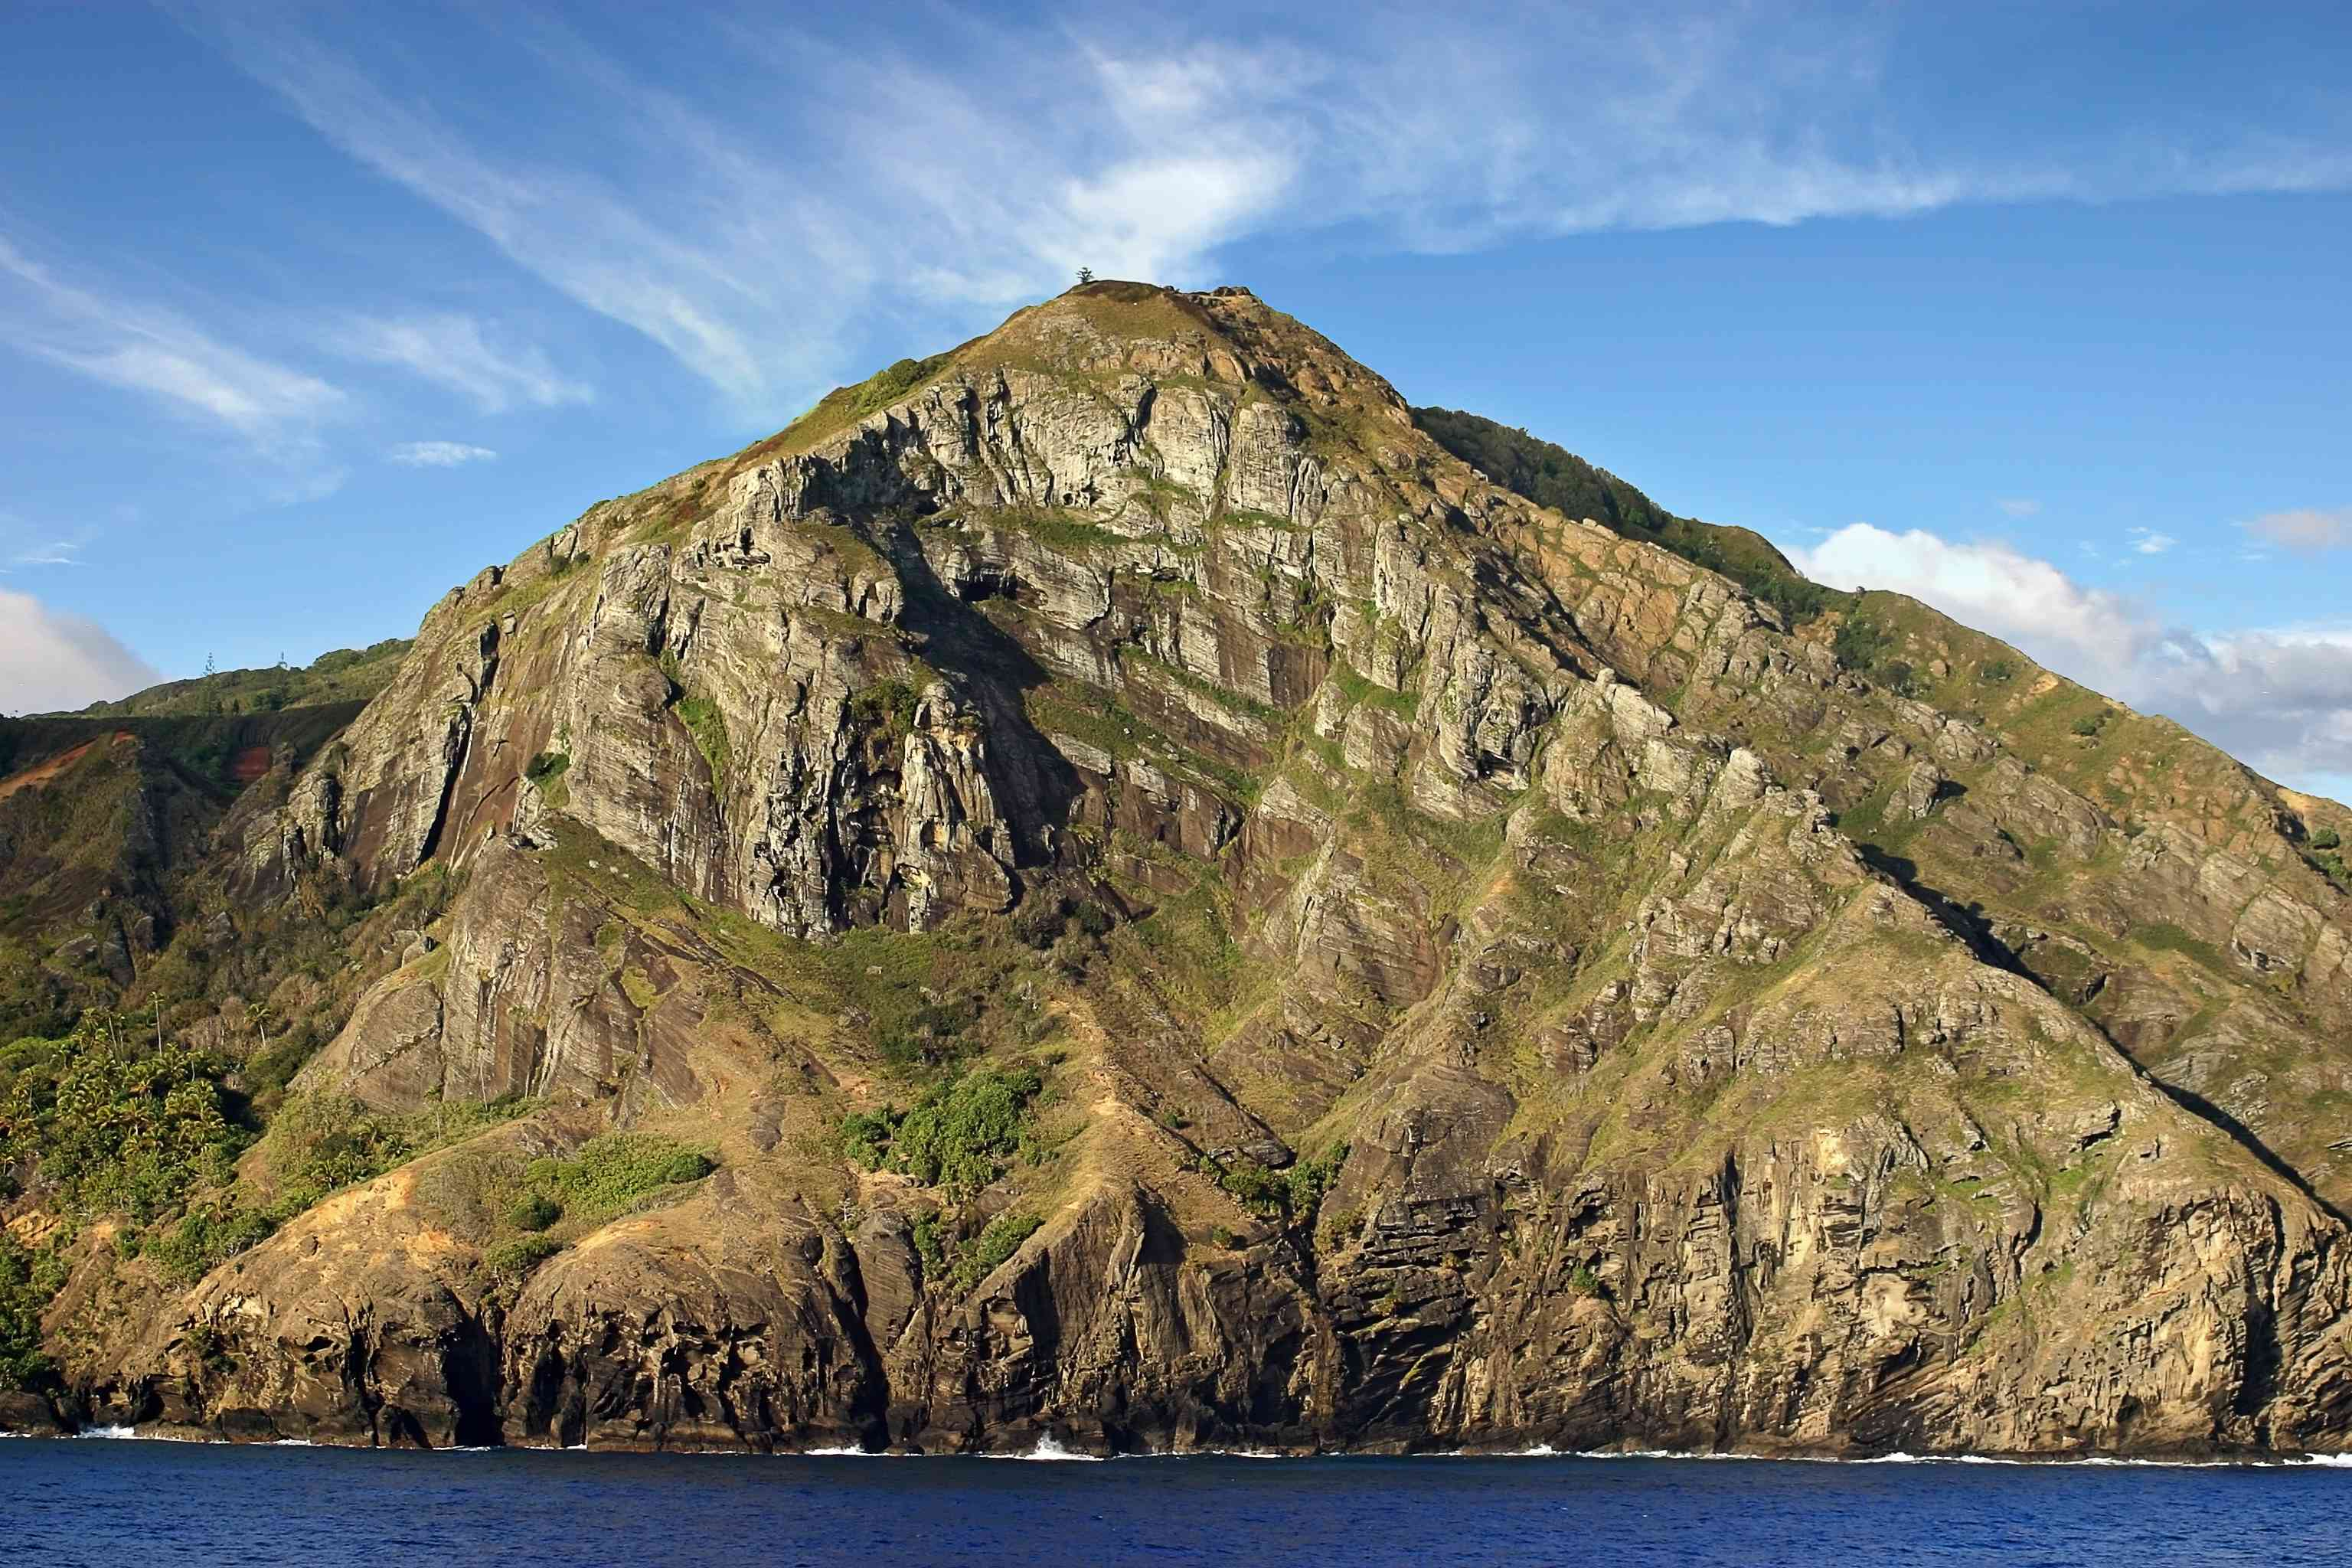 Pitcairn Island is a volcanic island and the last British Overseas Territories in the Pacific ocean